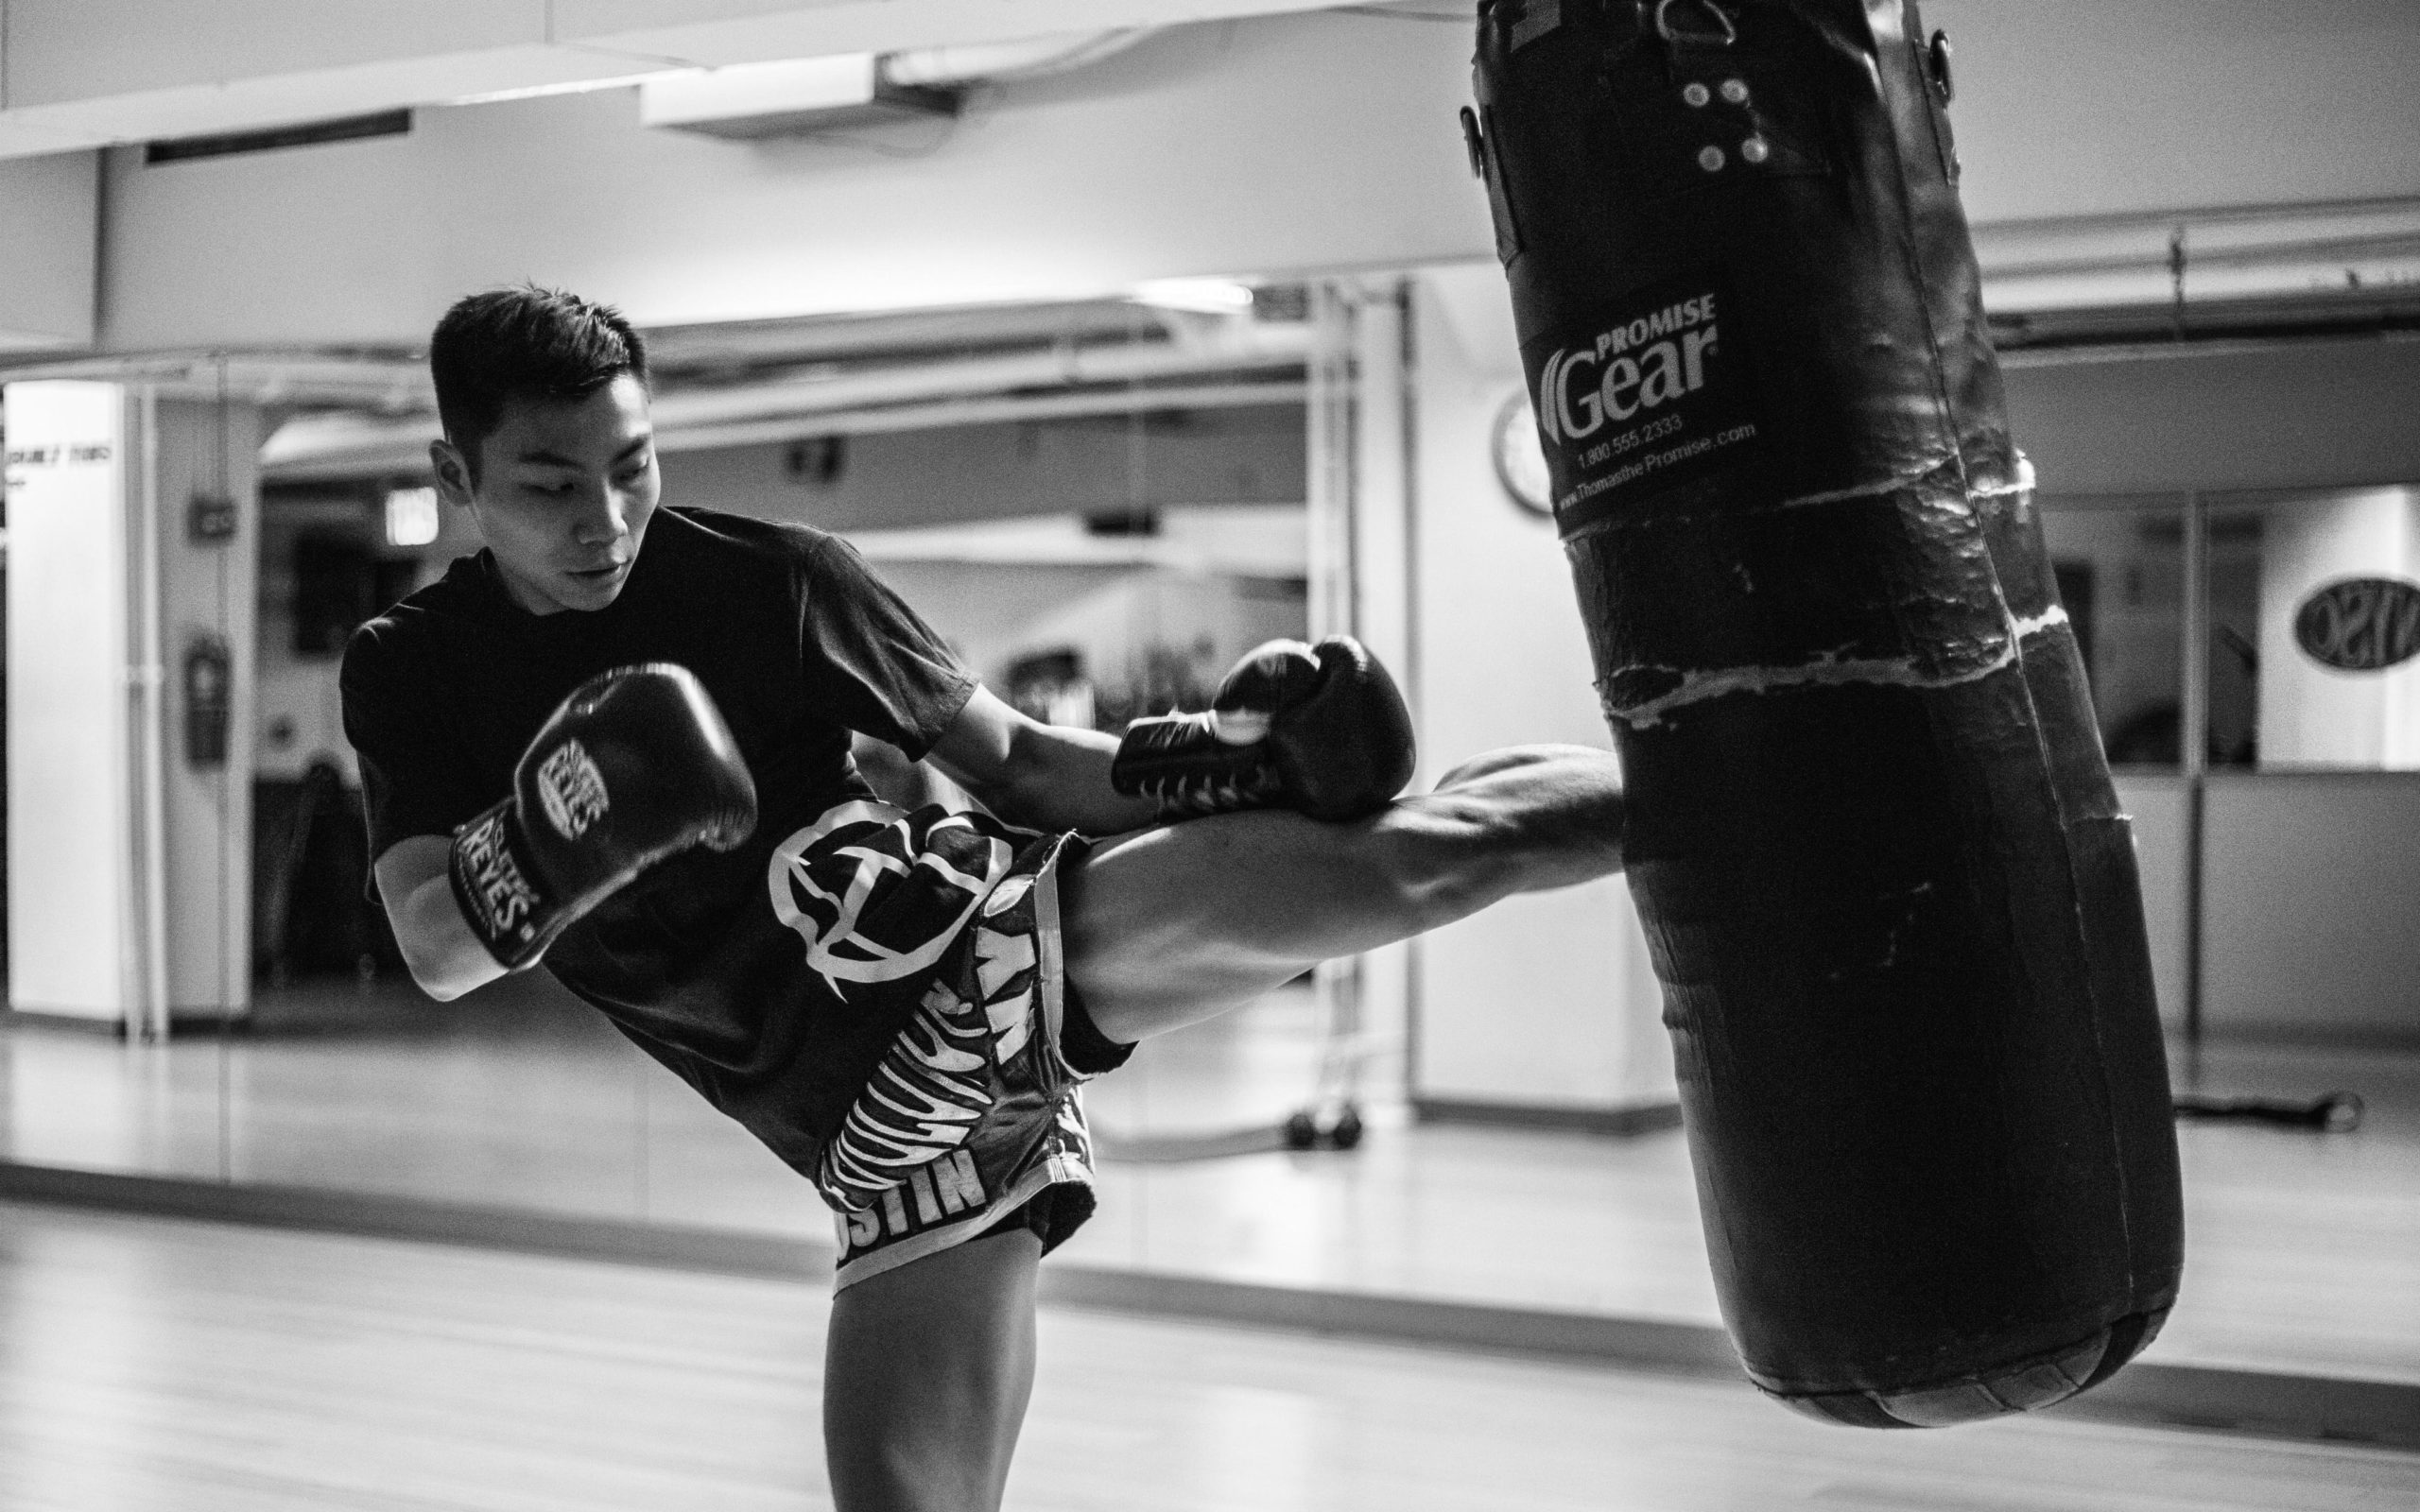 Achieving Goals Kung Fu Fighter Kickboxer Training